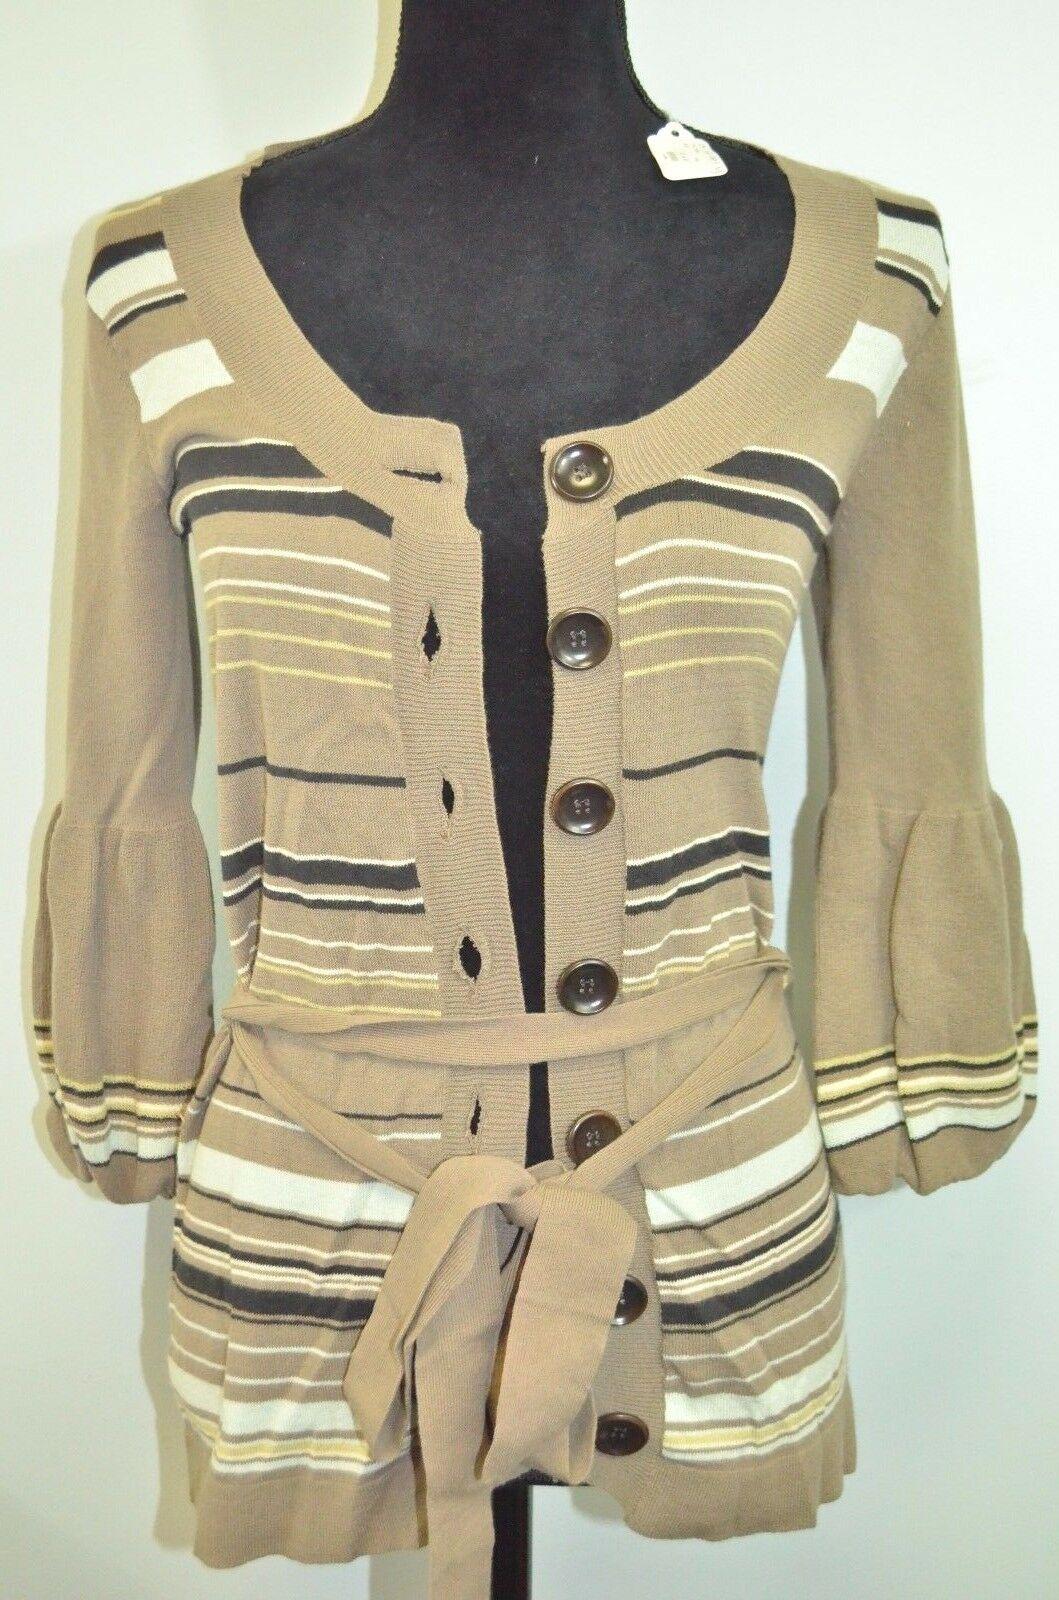 NWT Women's Nanette Lepore Brown Buttoned Striped Cardigan Size M MSRP